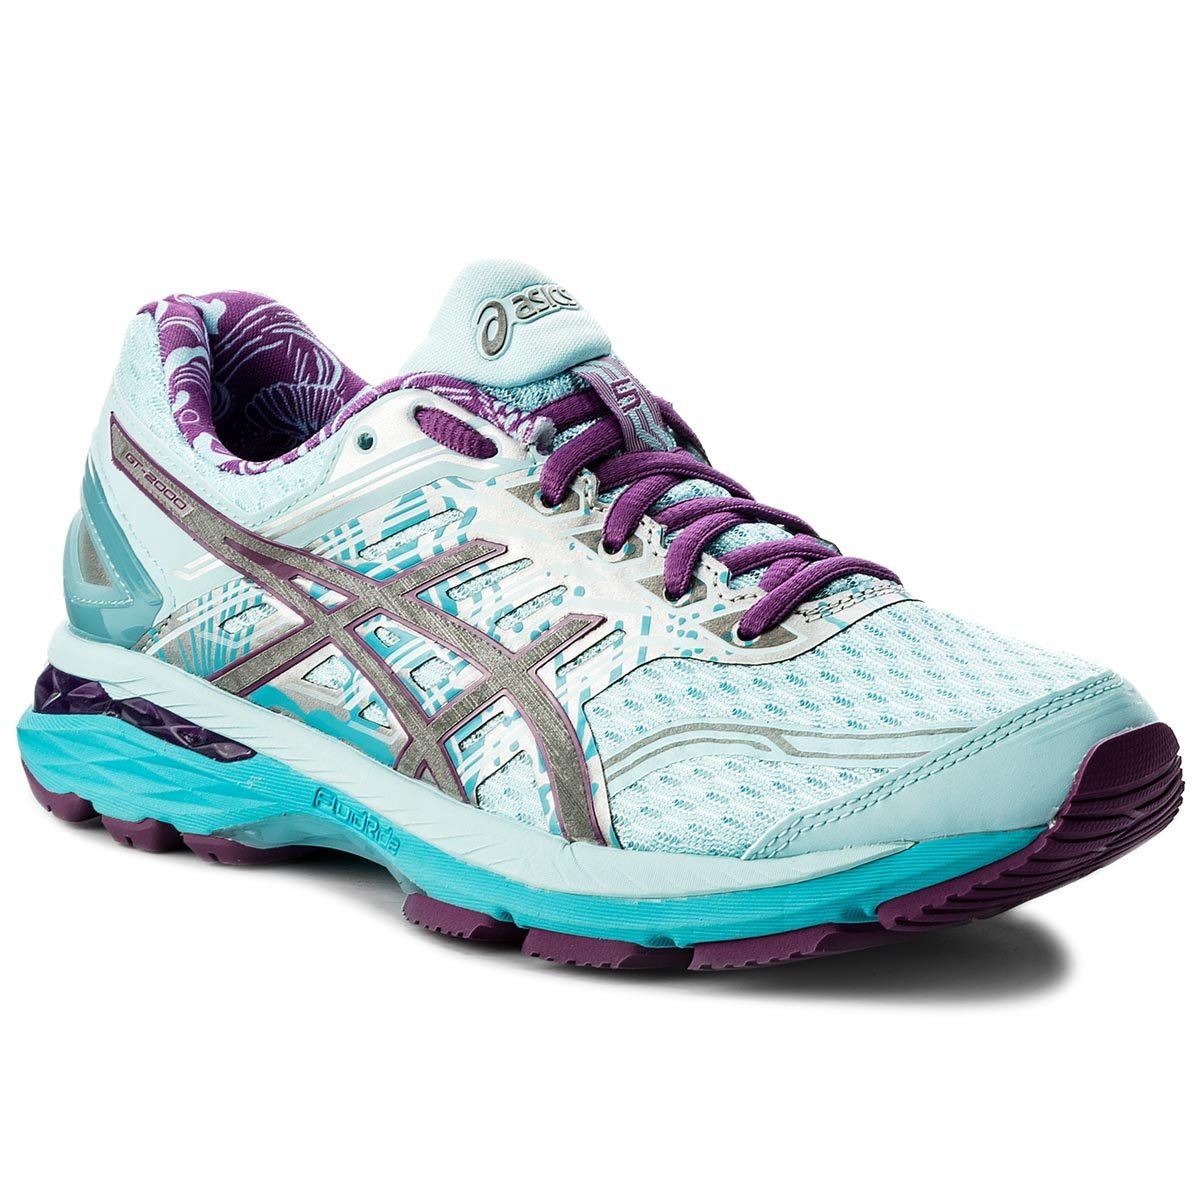 Buty ASICS - GT-2000 5 Lite-Show T761N Pale Blue/Orchid/Reflective 3936